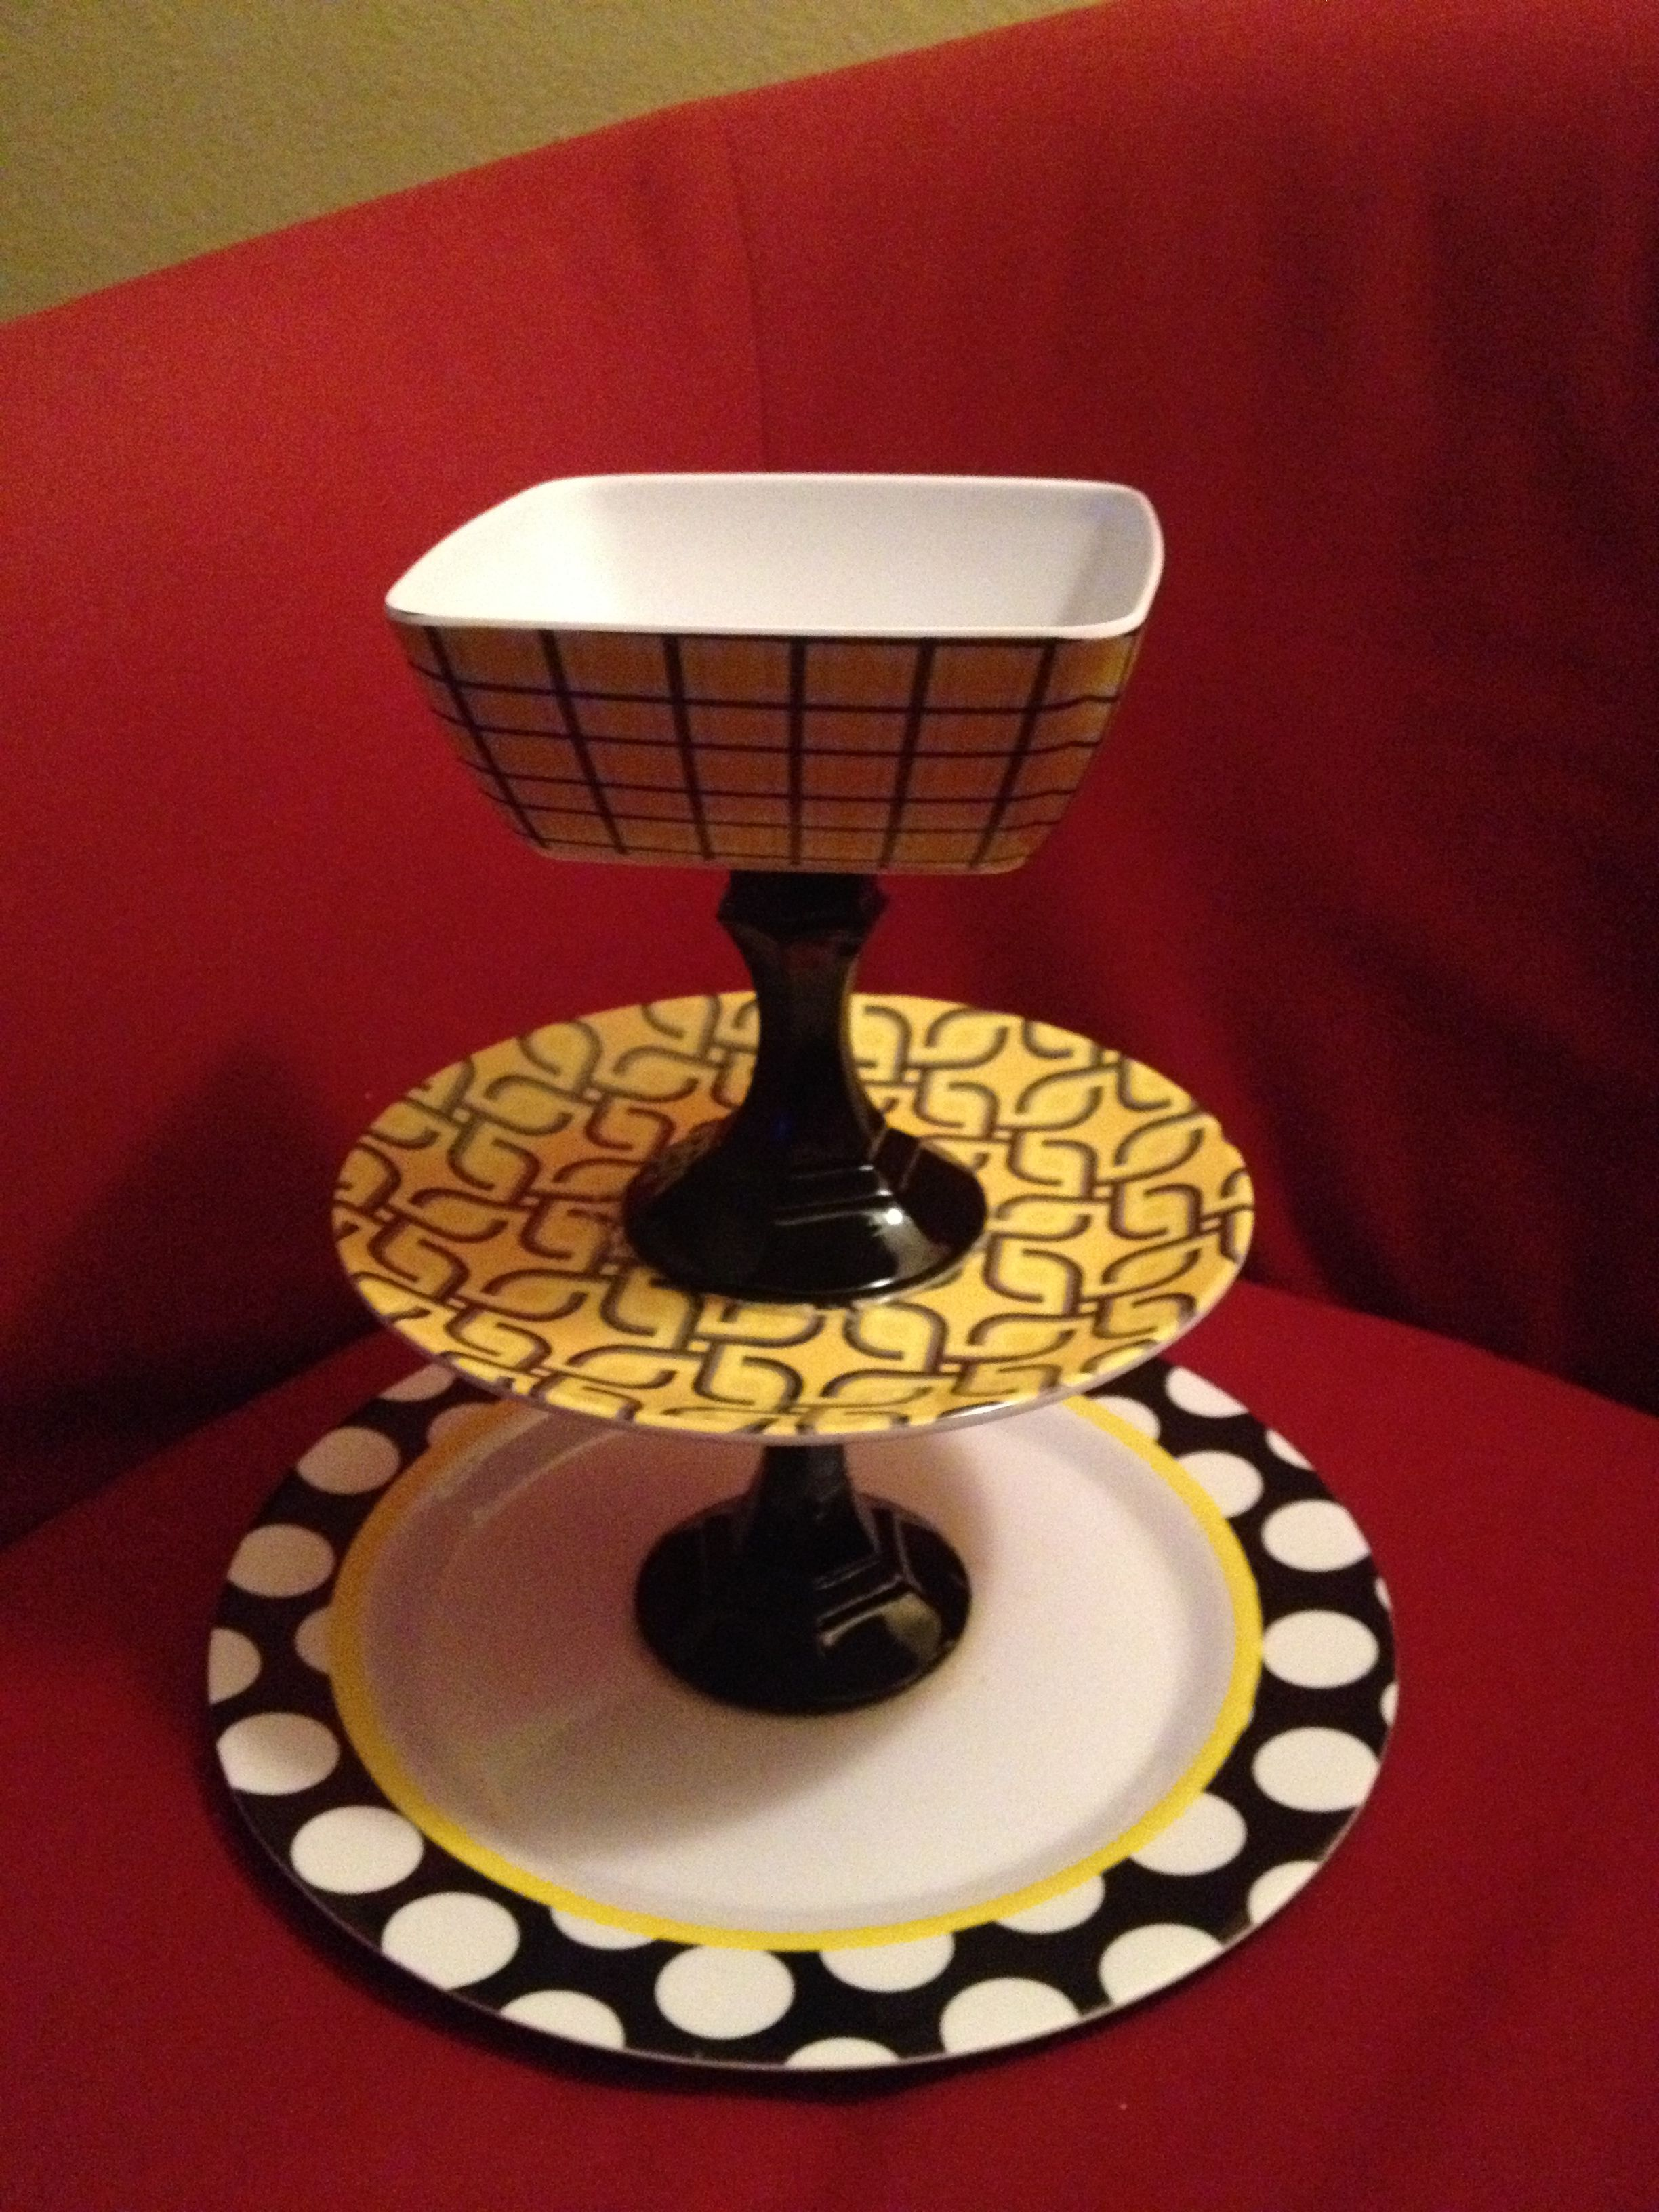 3 tiered server made from melamine plates and dollar tree